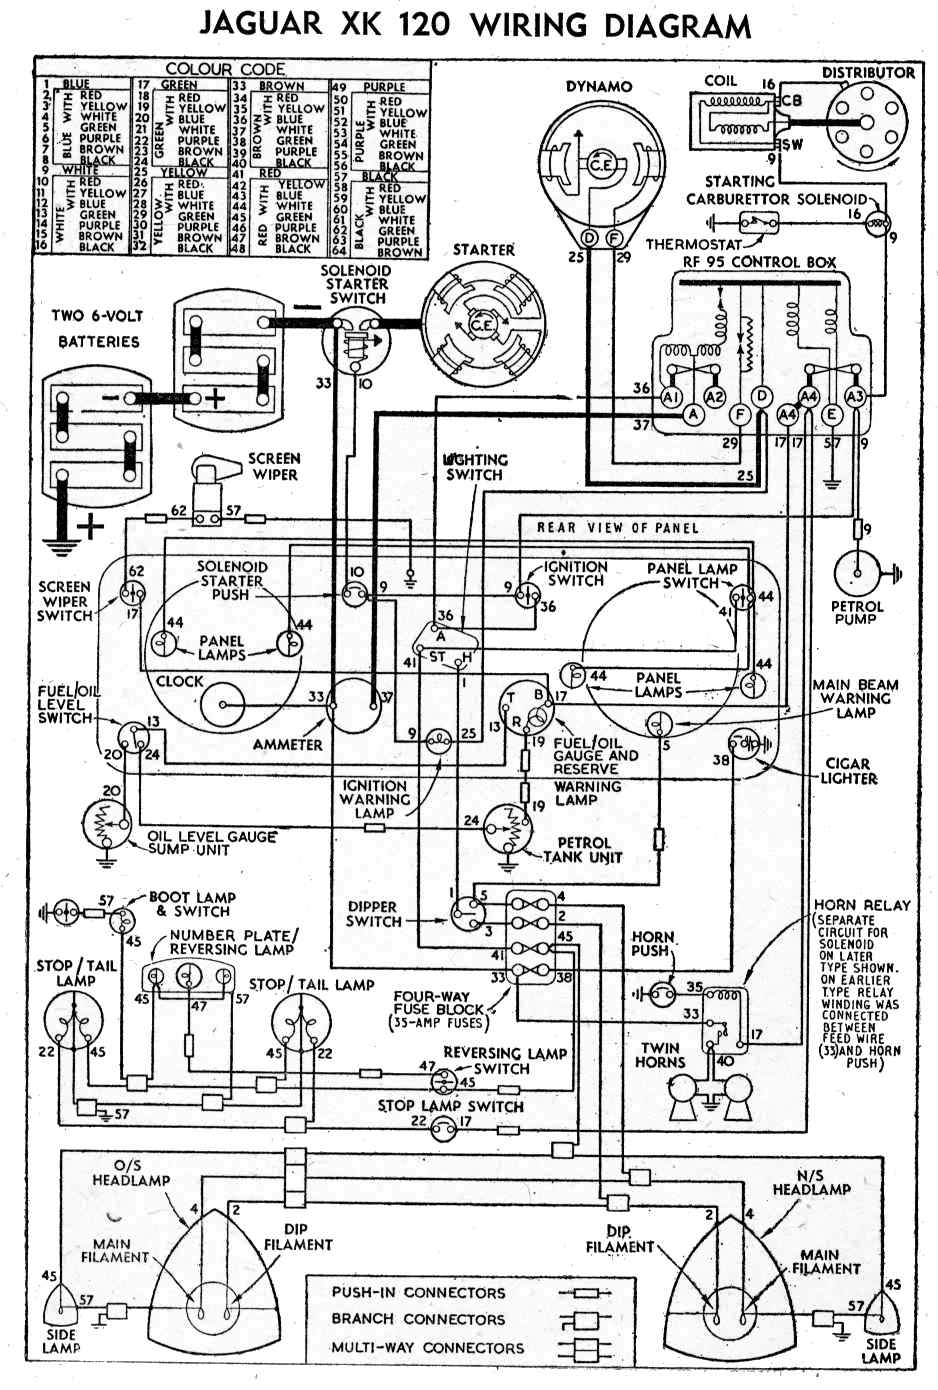 wiring harness jaguar xk150 - wiring diagram schematic bear-store -  bear-store.aliceviola.it  aliceviola.it